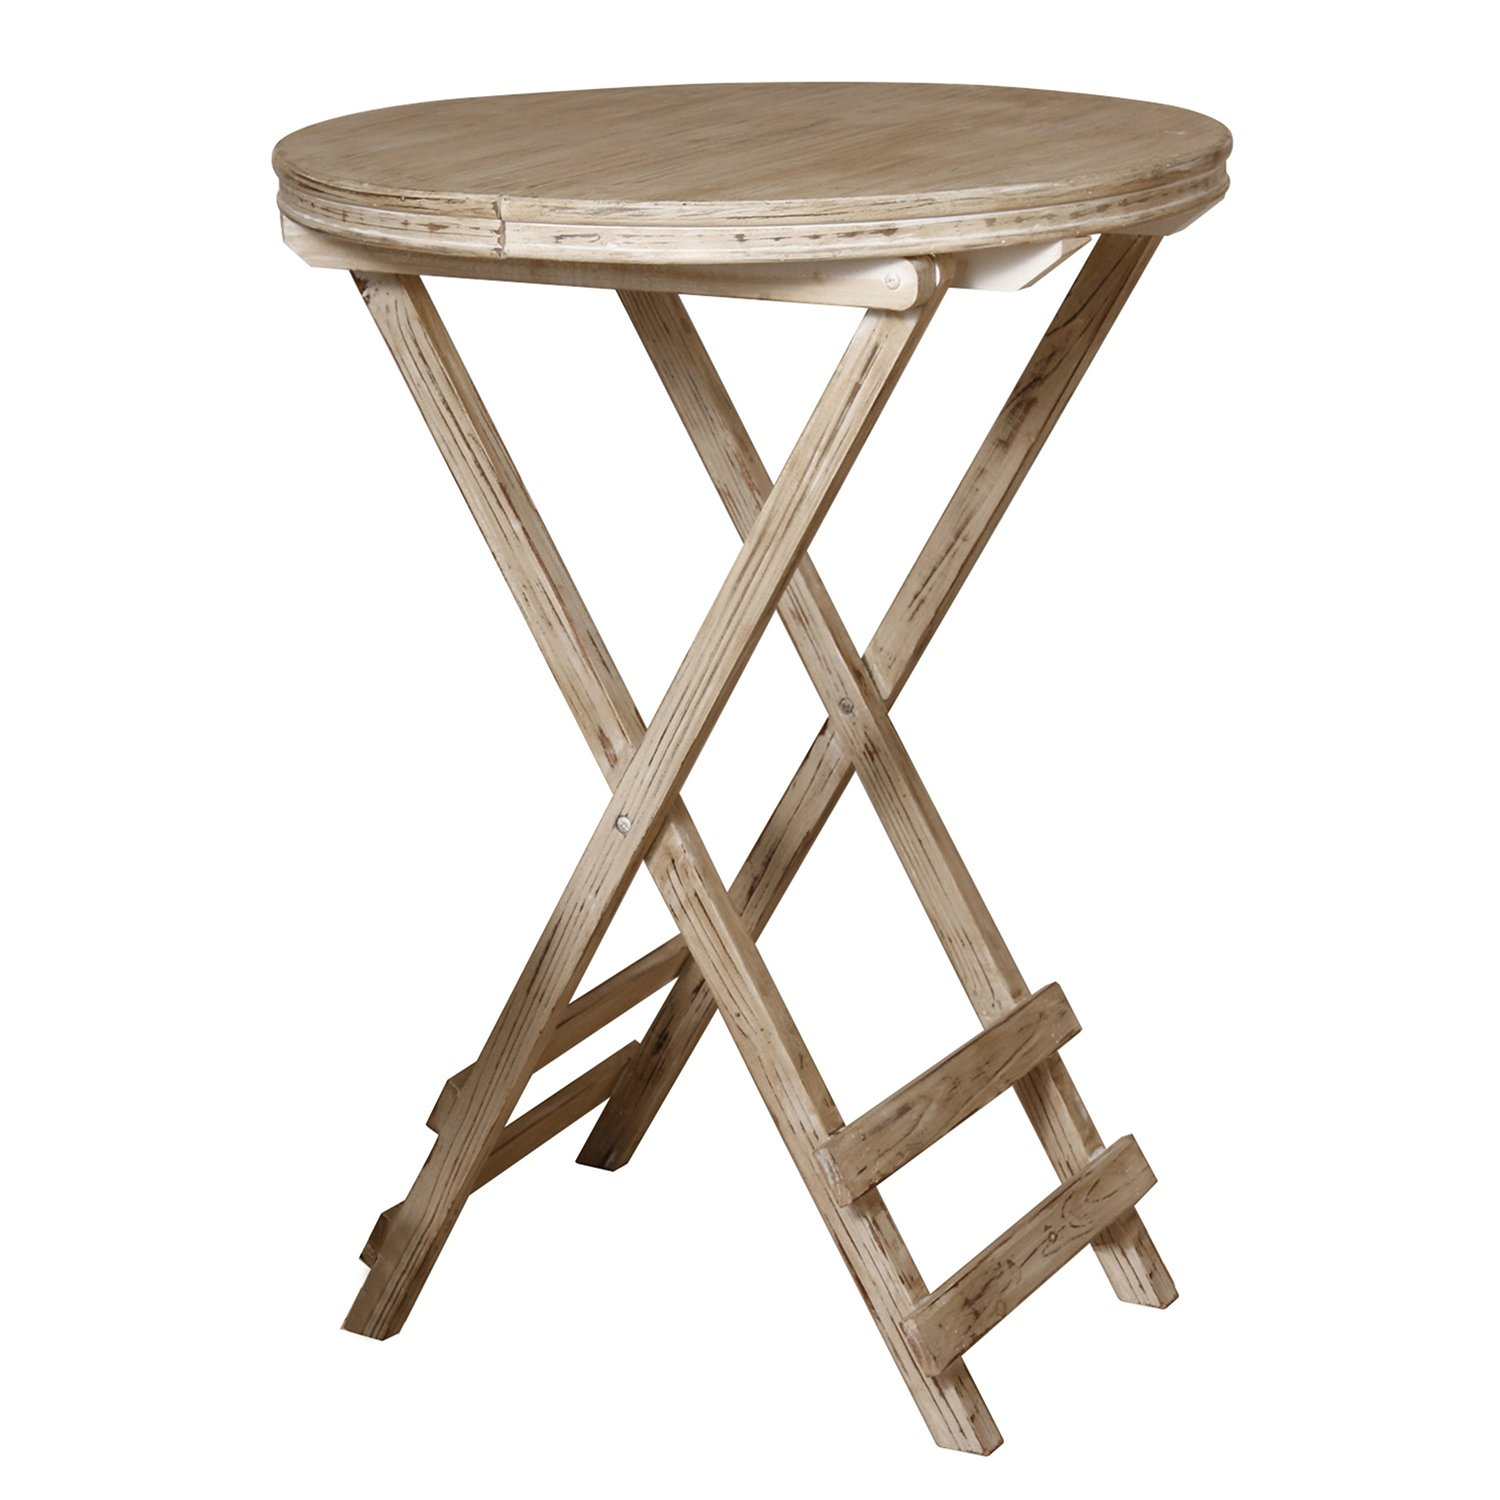 Foldable Round Wood Table 30'' Diameter Winter White-Wash Color Everyday Table by The Gerson Company